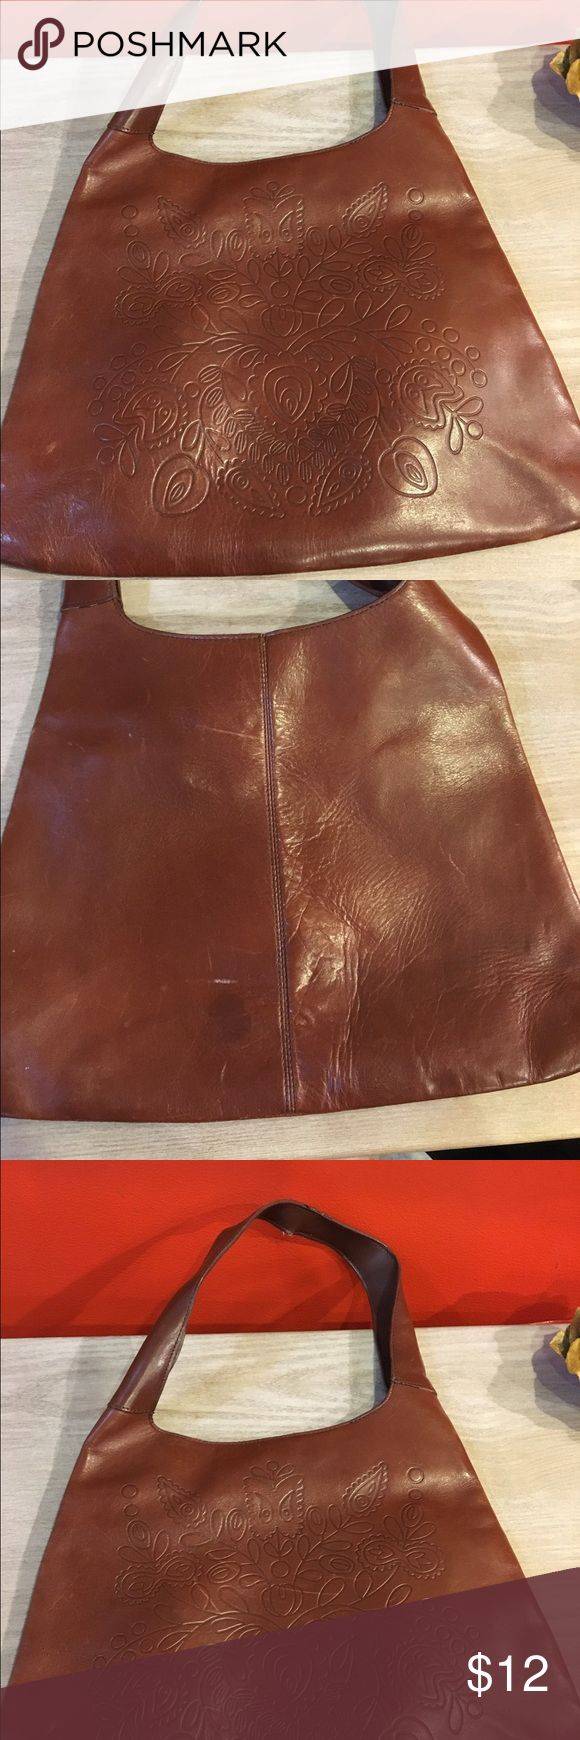 Gap purse Great condition, small stain on back of purse shown GAP Bags Shoulder Bags